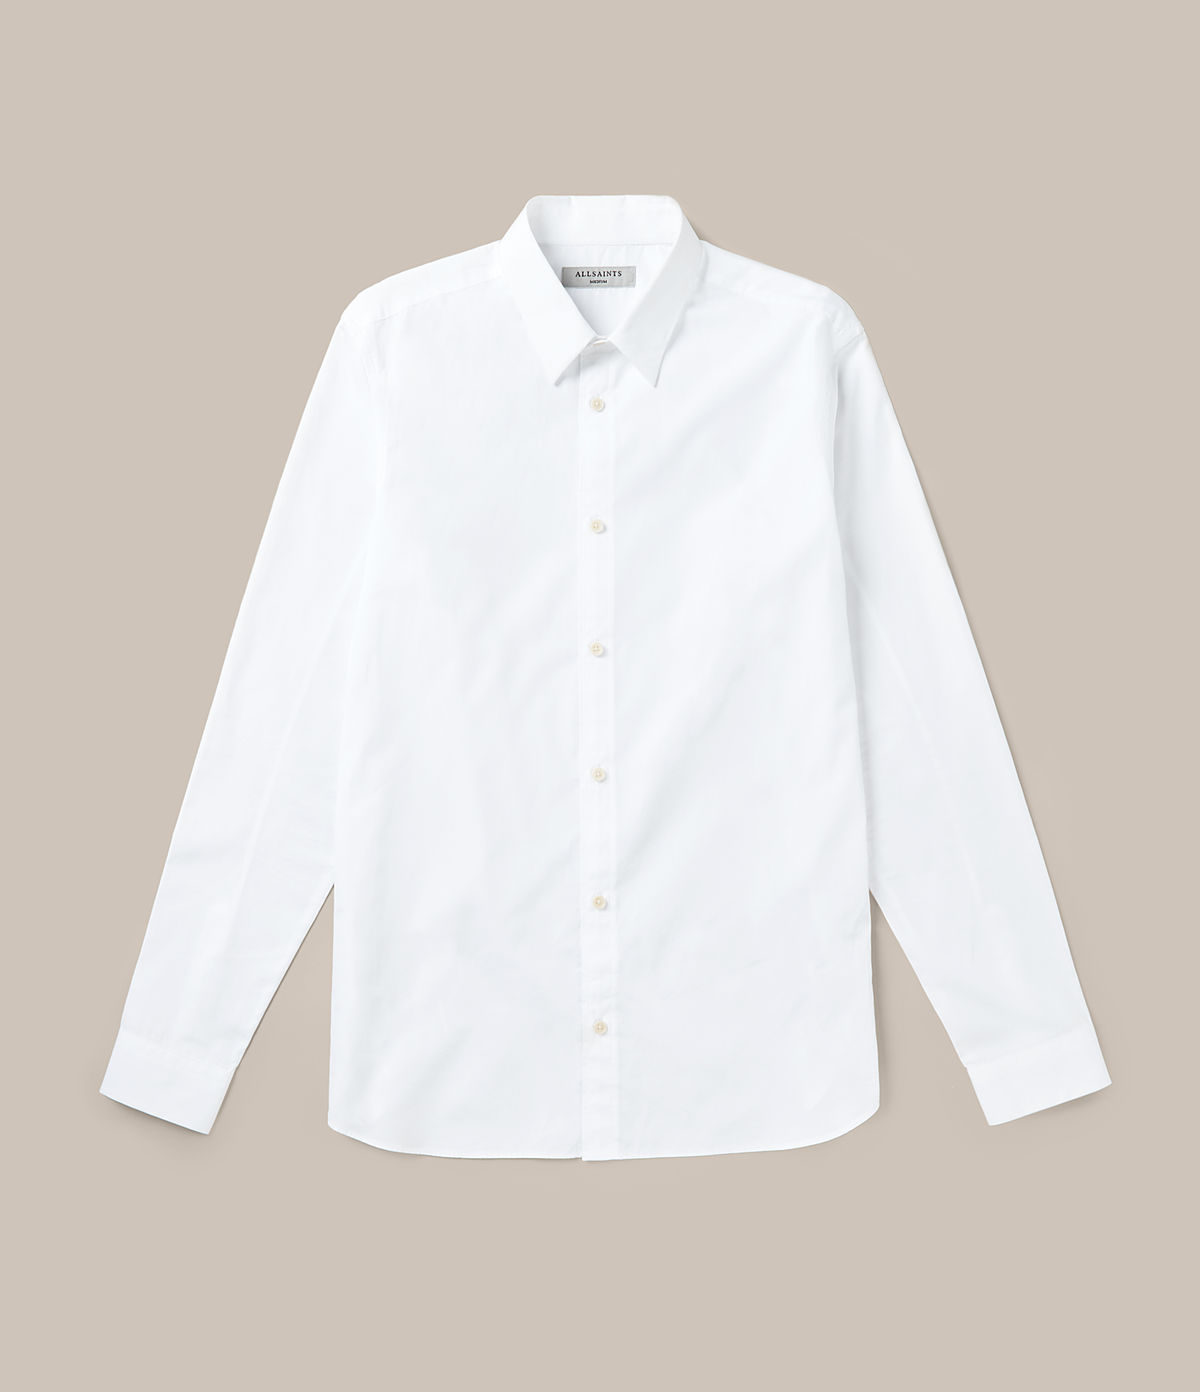 ALLSAINTS UK: Men's white shirts, shop now.